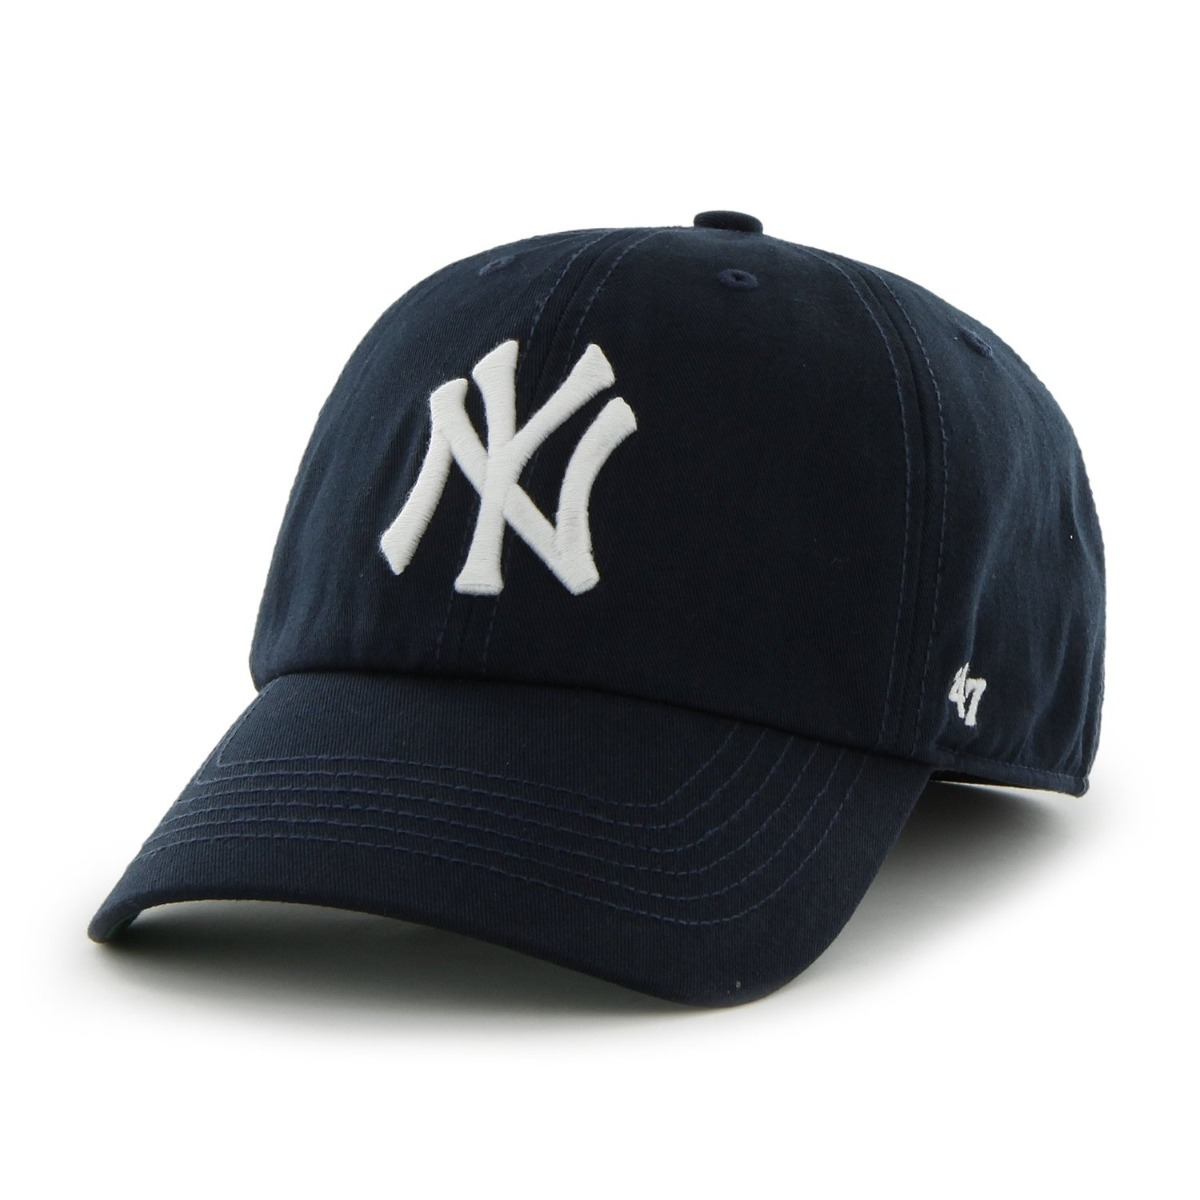 Gorra Mlb De Los New York Yankees Cerrada -   849.00 en Mercado Libre 2a6ff7c1cd3